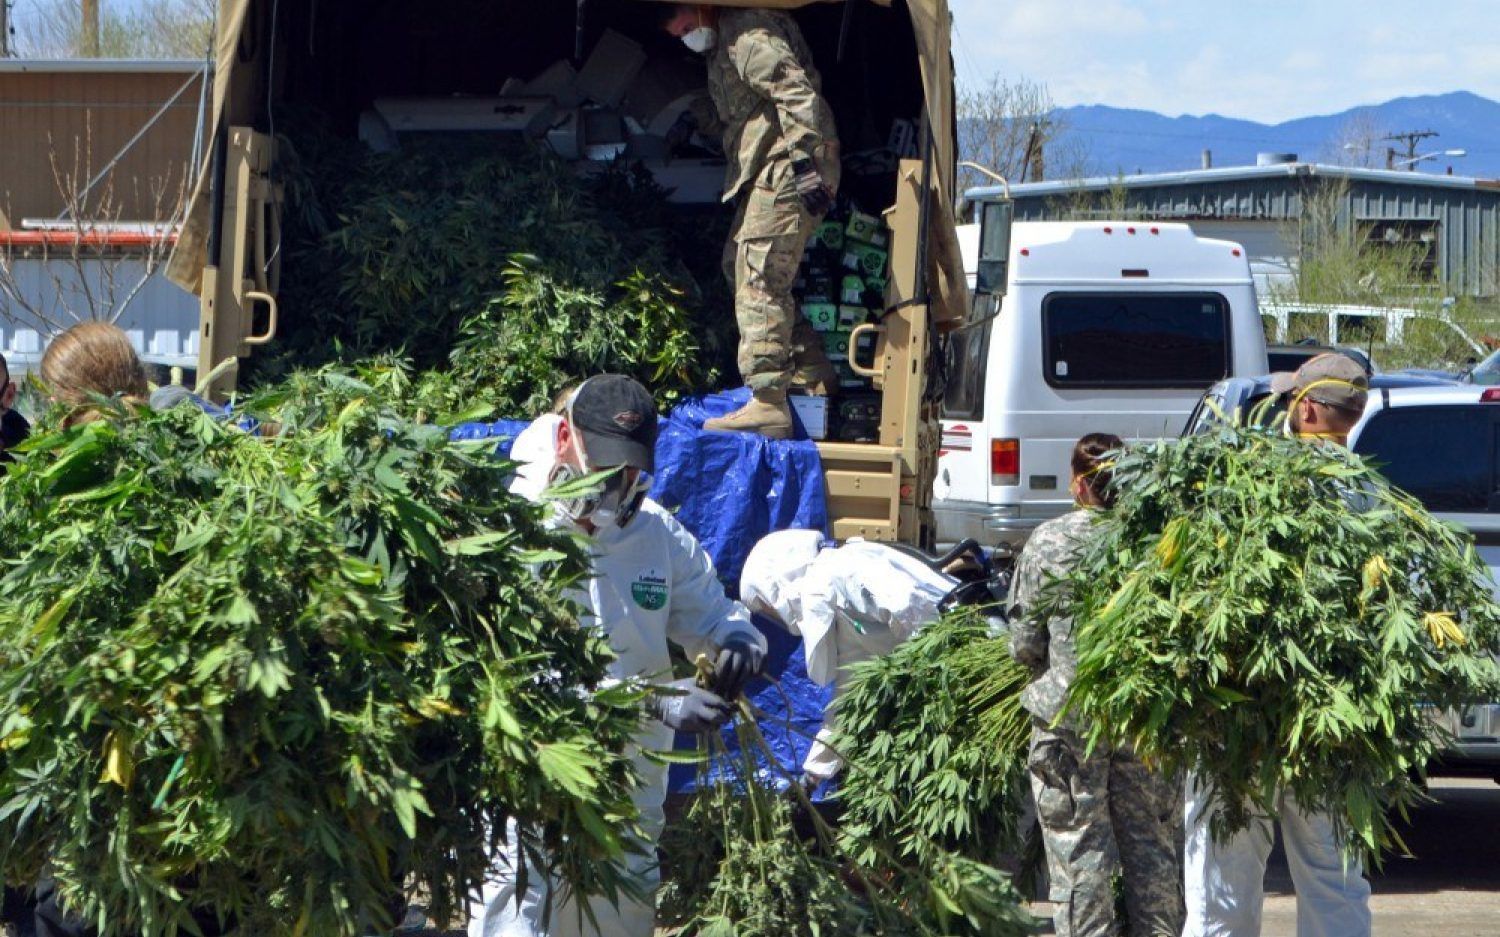 Legal pot is sowing seeds of illegal growing operations in Colorado